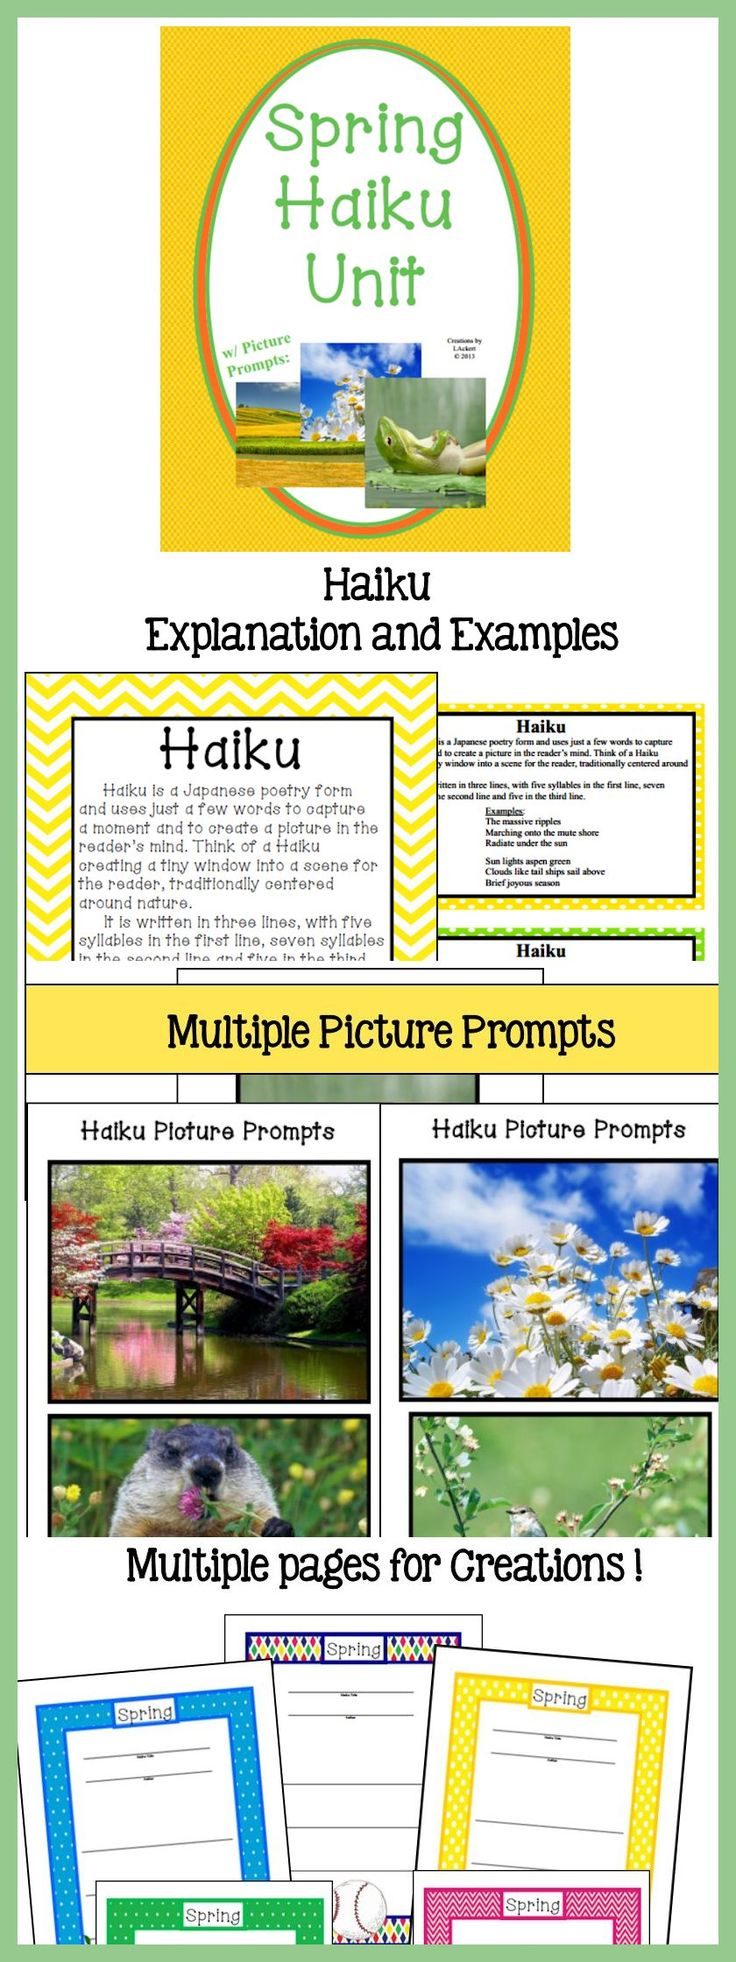 Everything you need for students to create wonderful Spring Haiku!!* Explanation and Examples * Picture Prompts * Colorful Writing